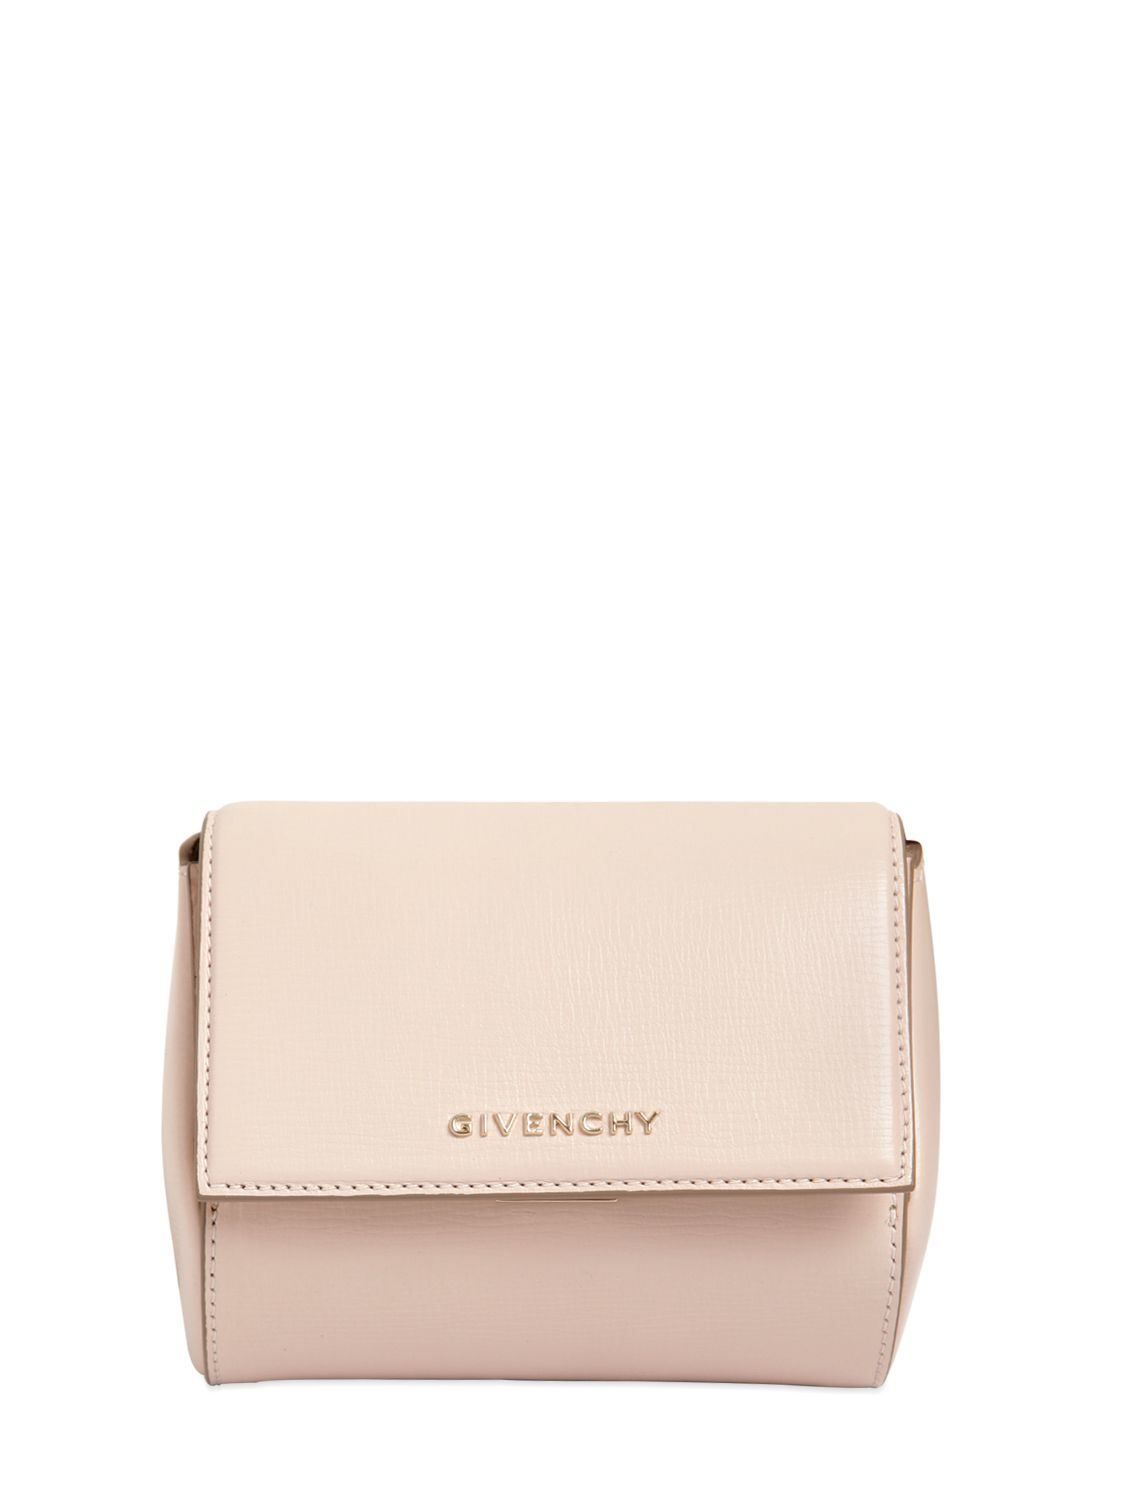 897d9885ea Givenchy Pandora Box Leather Clutch in Natural - Lyst